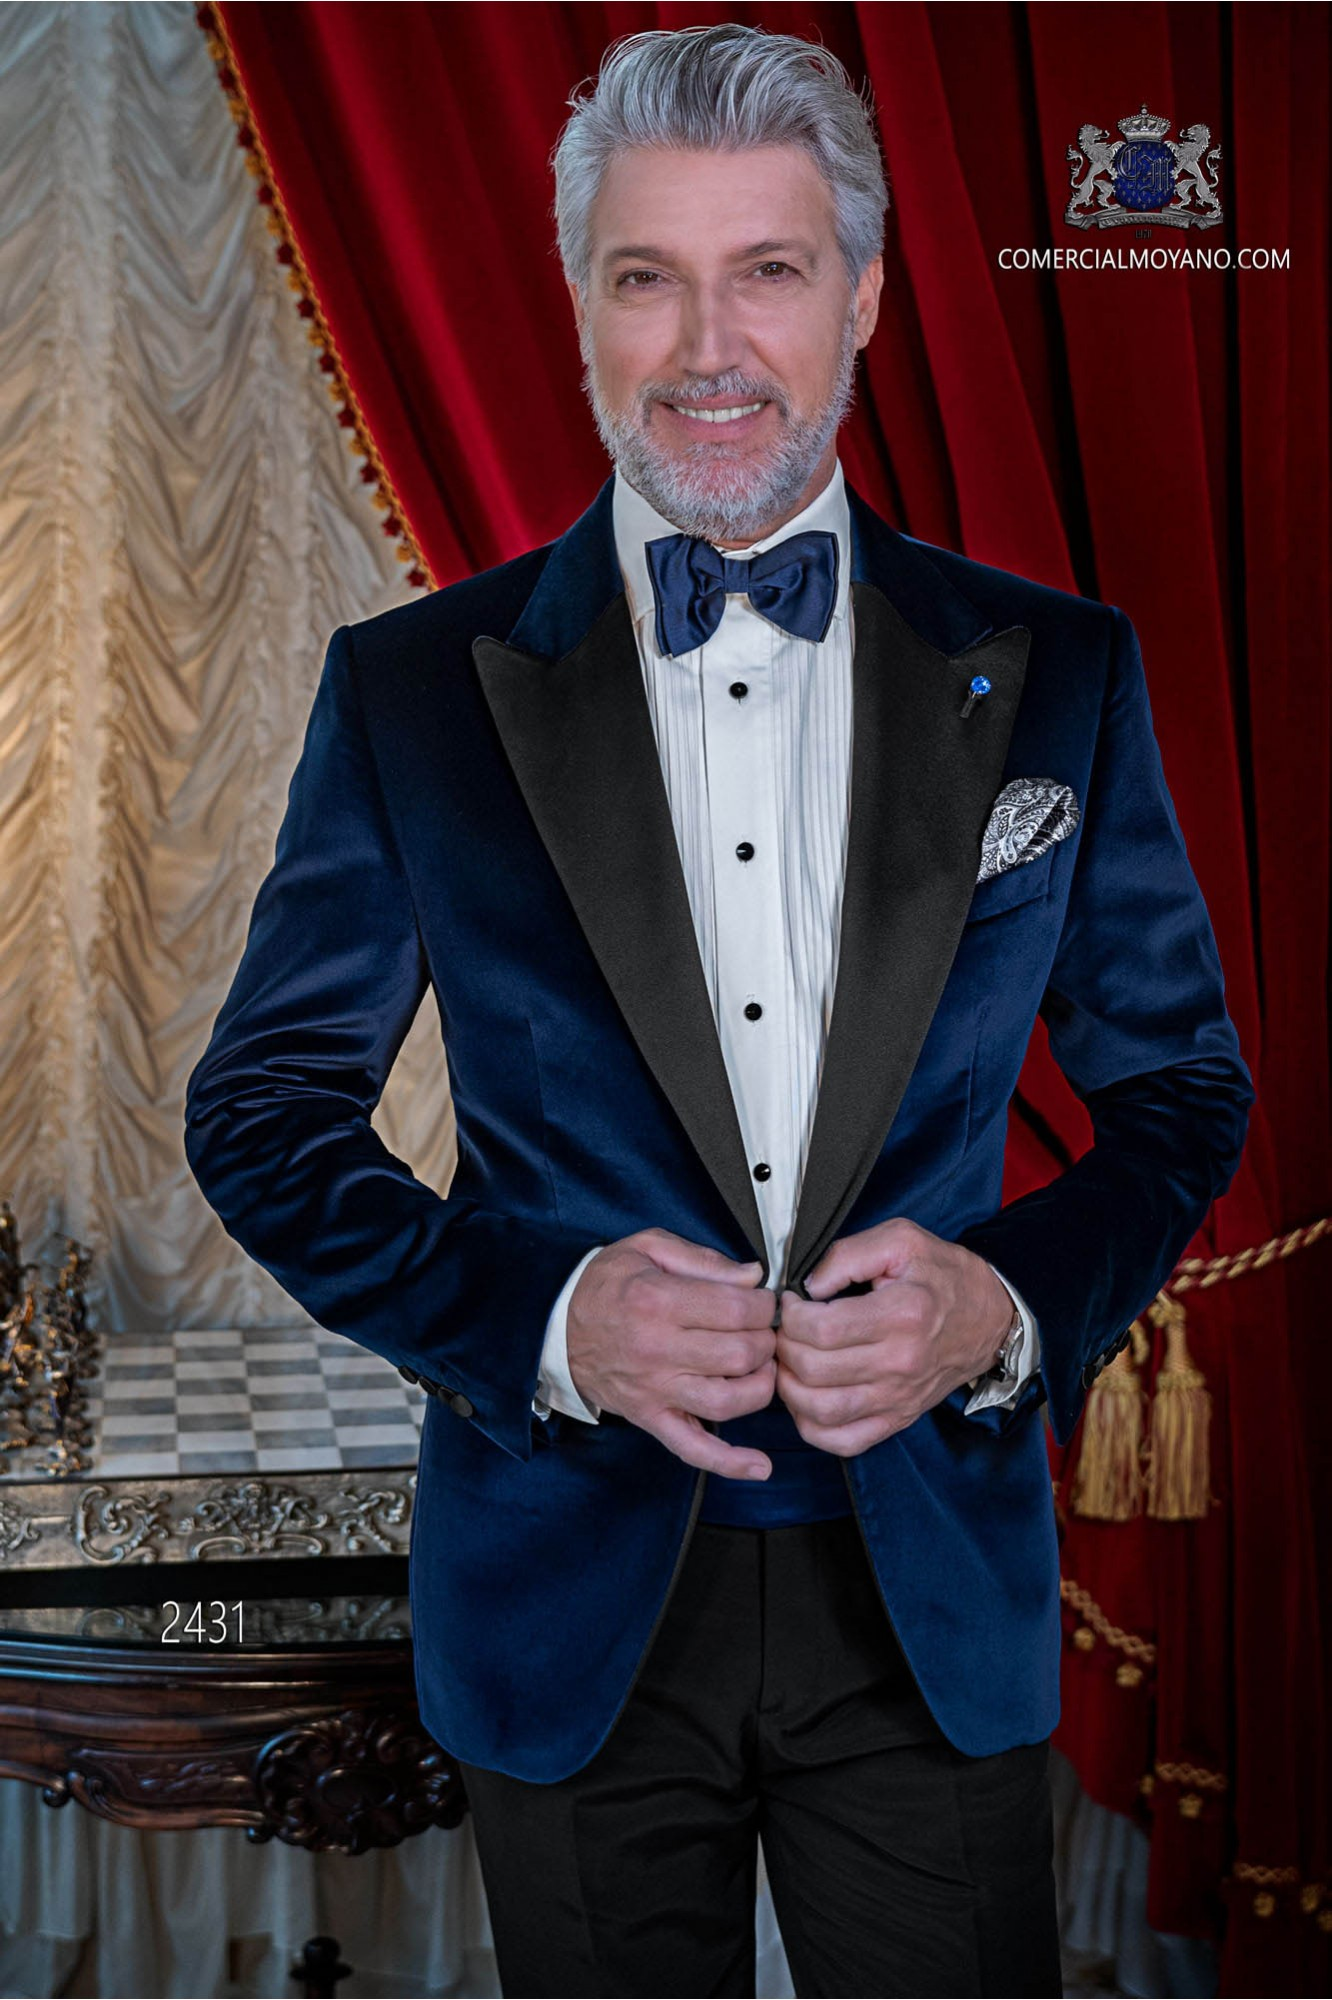 Italian velvet blue tuxedo with satin lapels